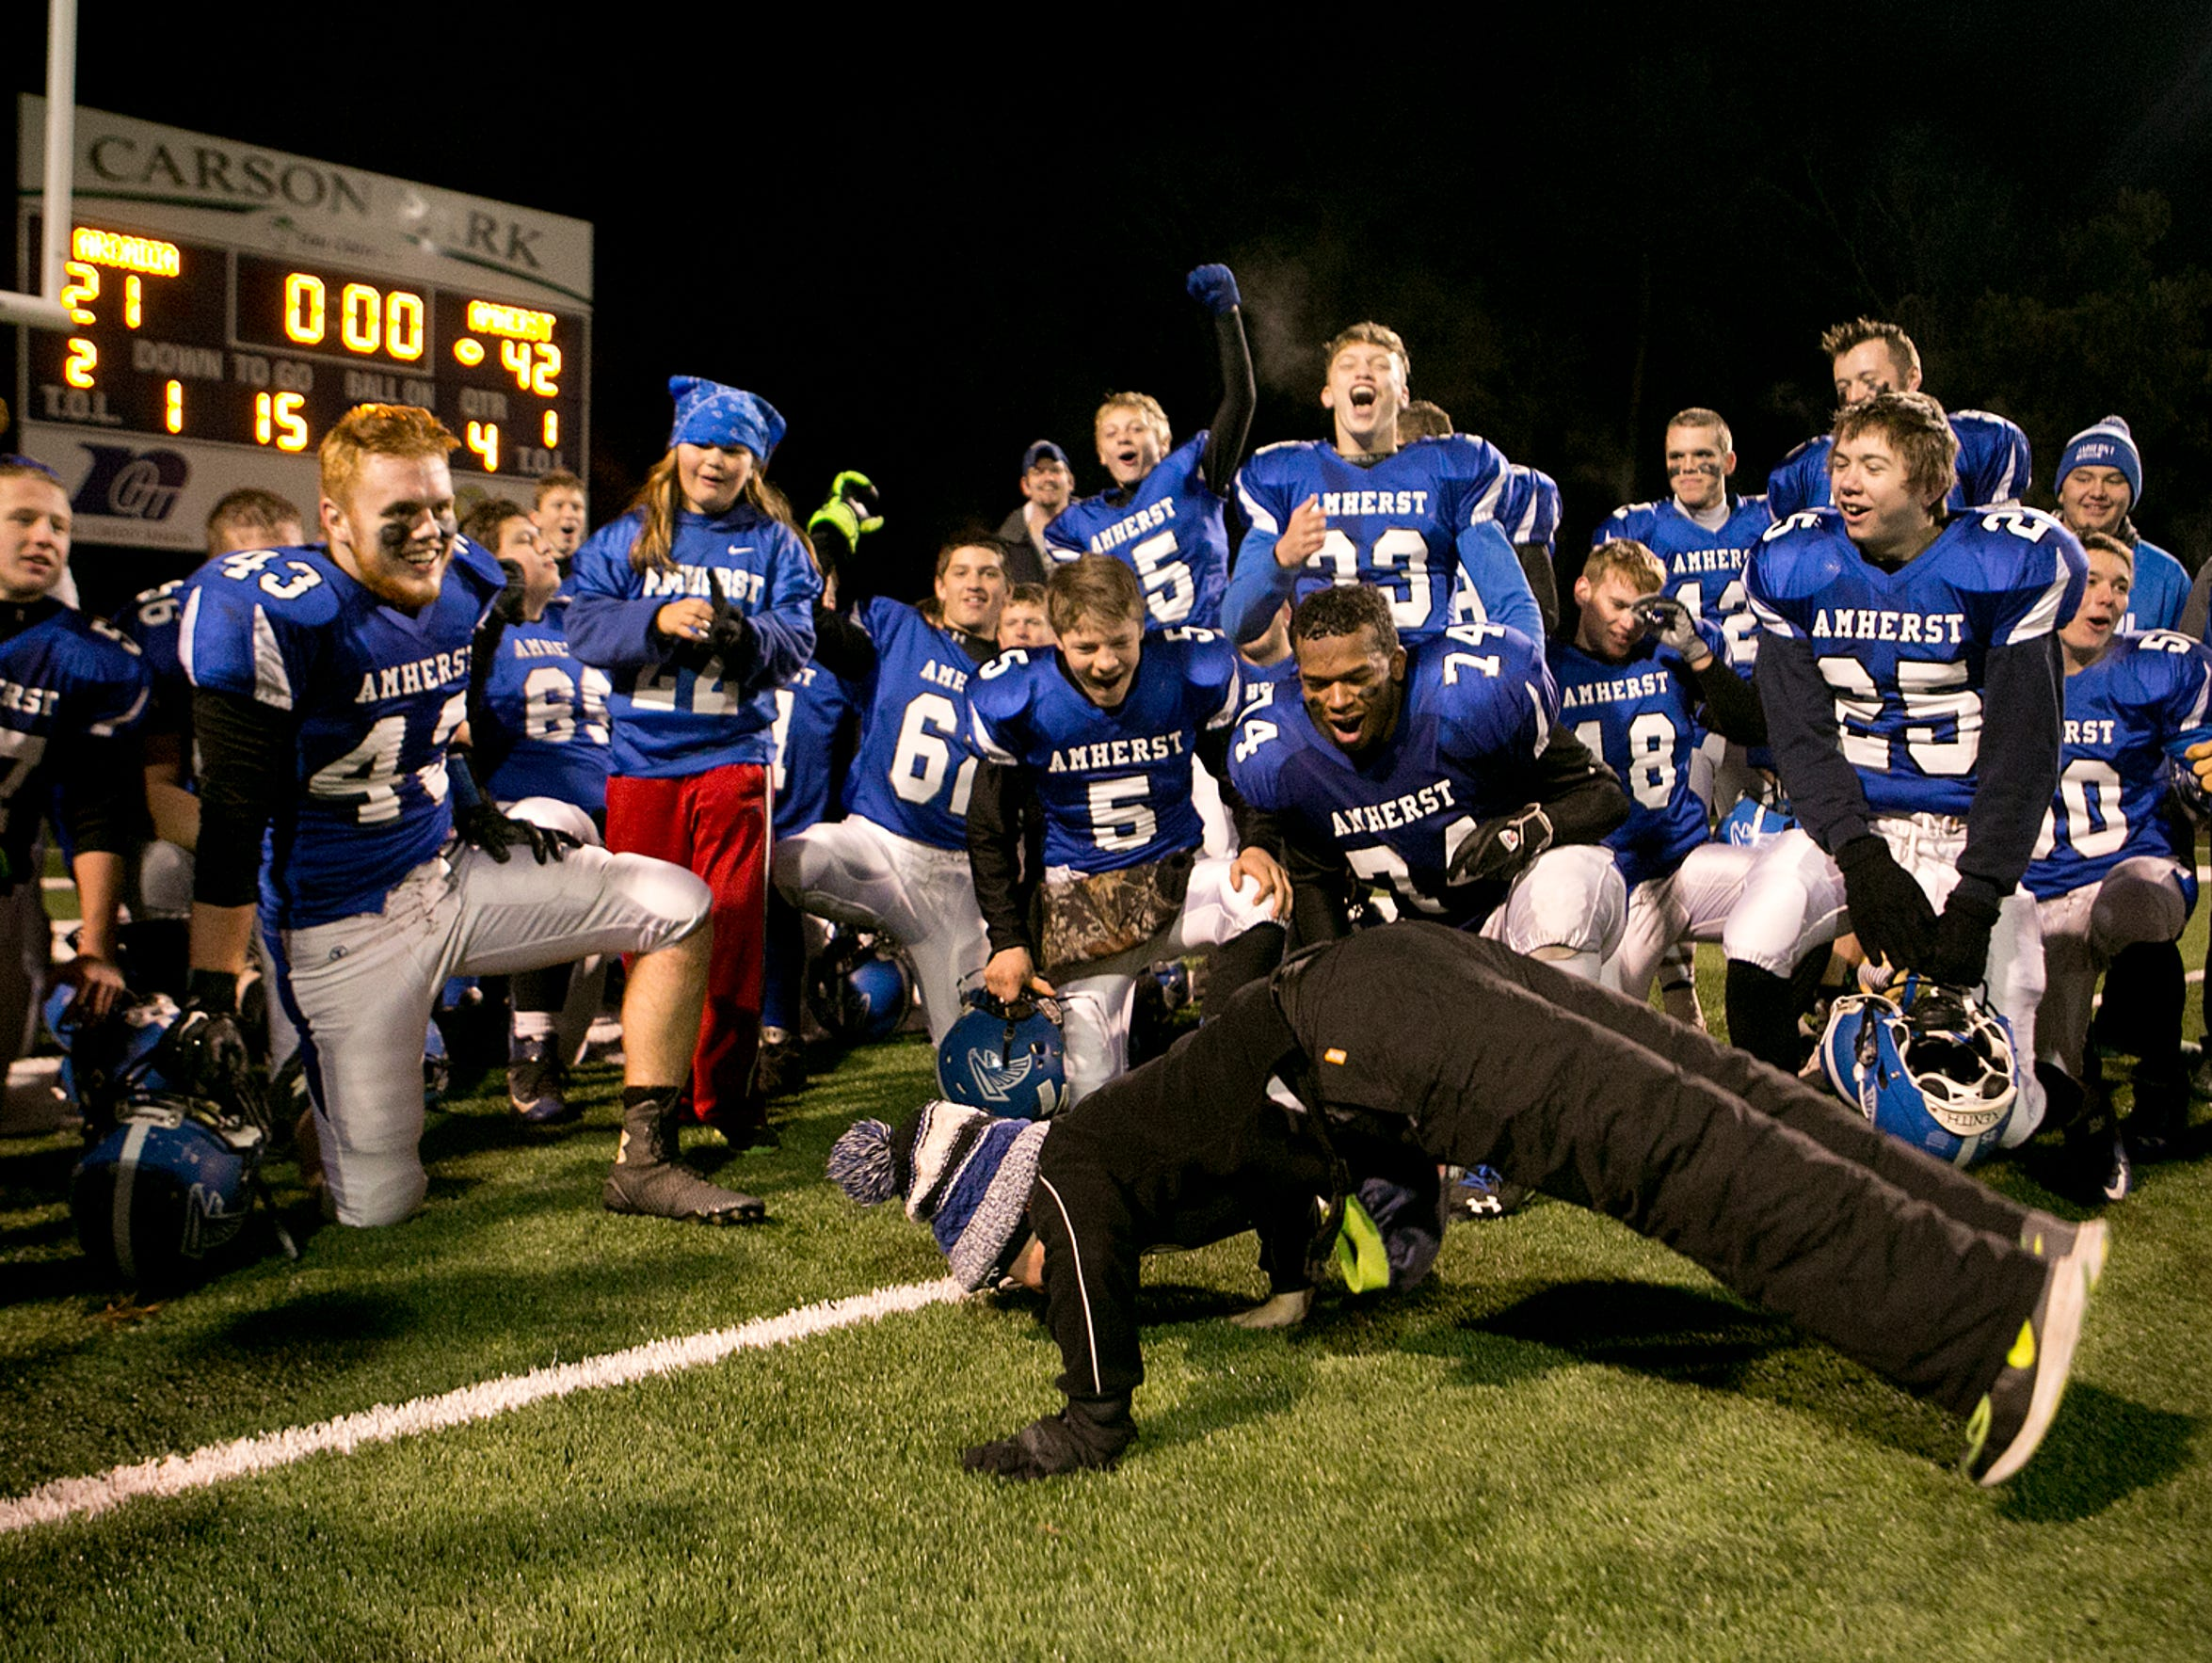 Jack Spadoni, 11, does the worm for the Amherst football